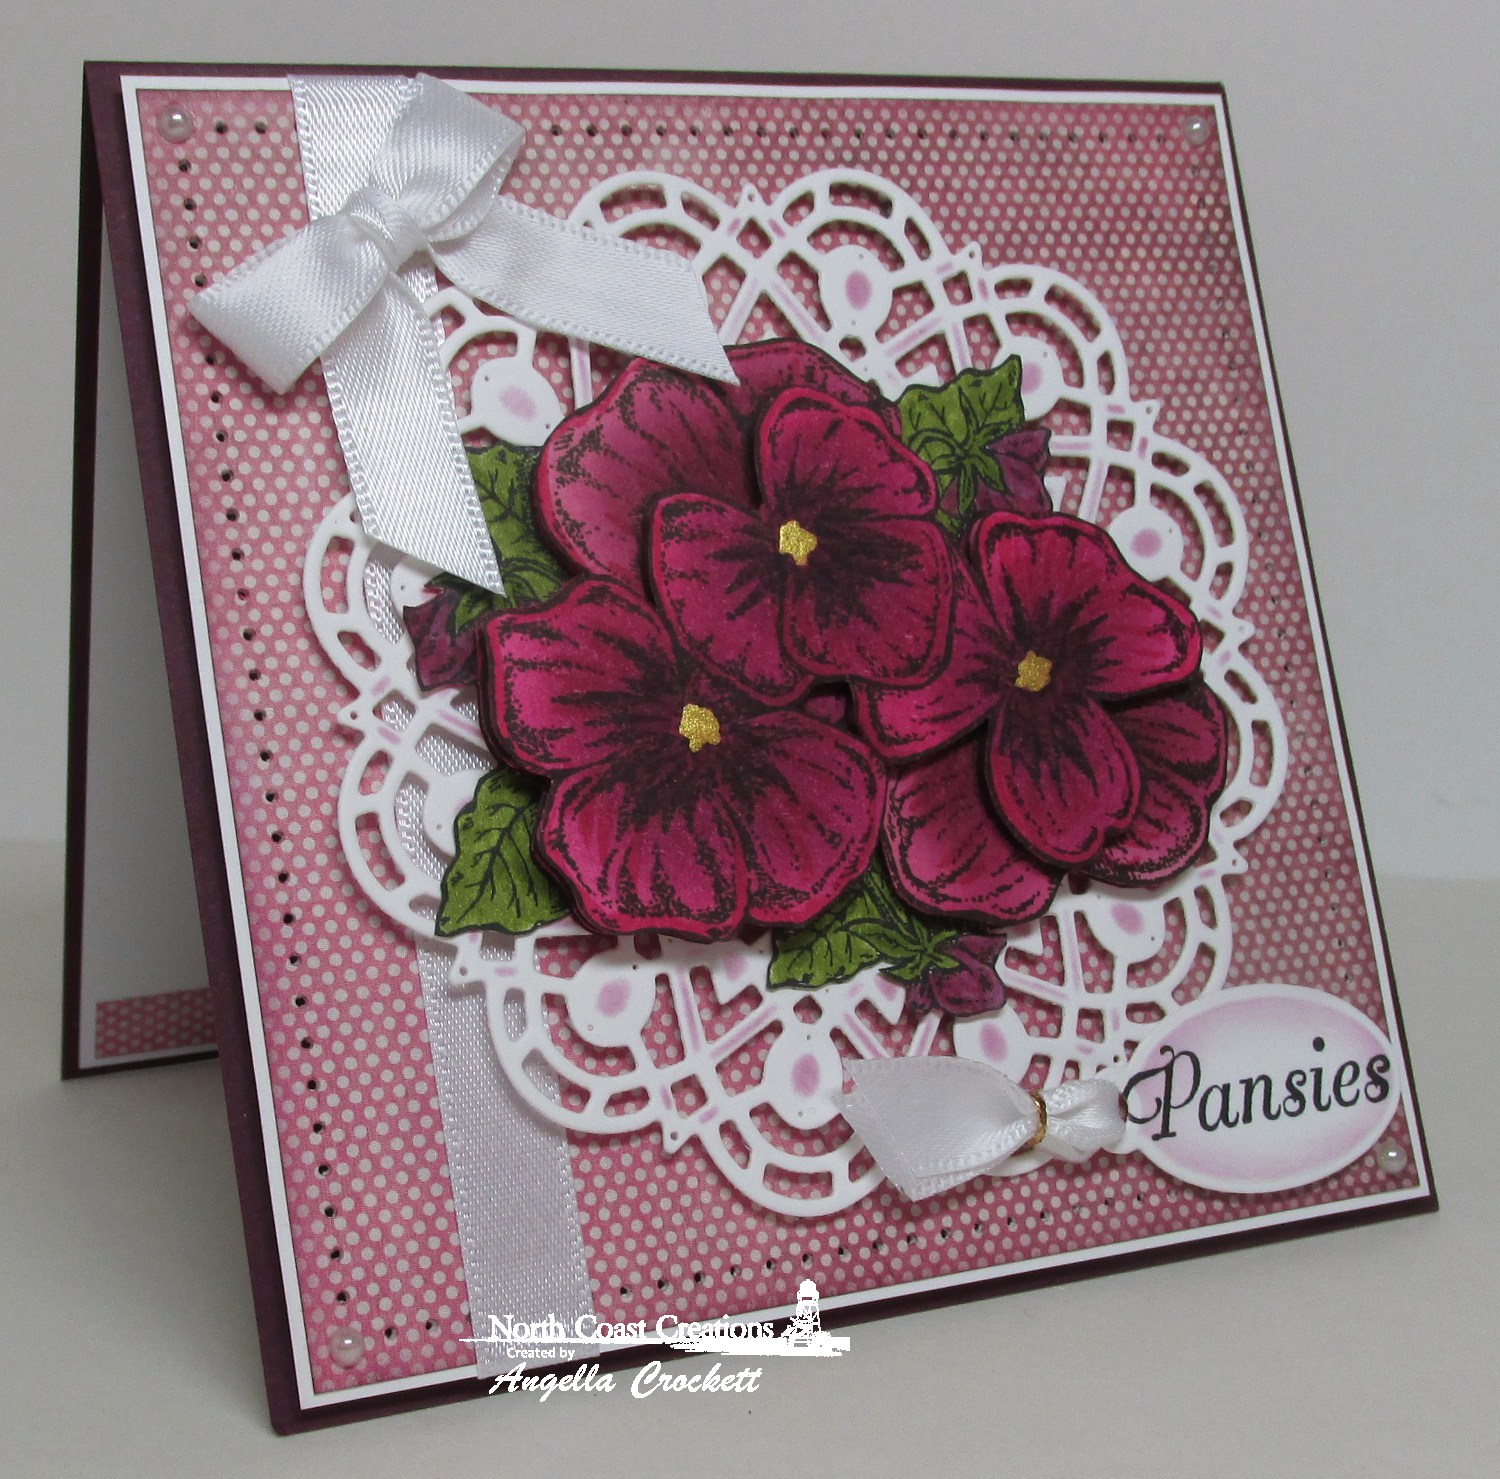 Stamps - North Coast Creatins Pansies, ODBD Custom Mini Tags Dies, ODBD Custom Doily Dies